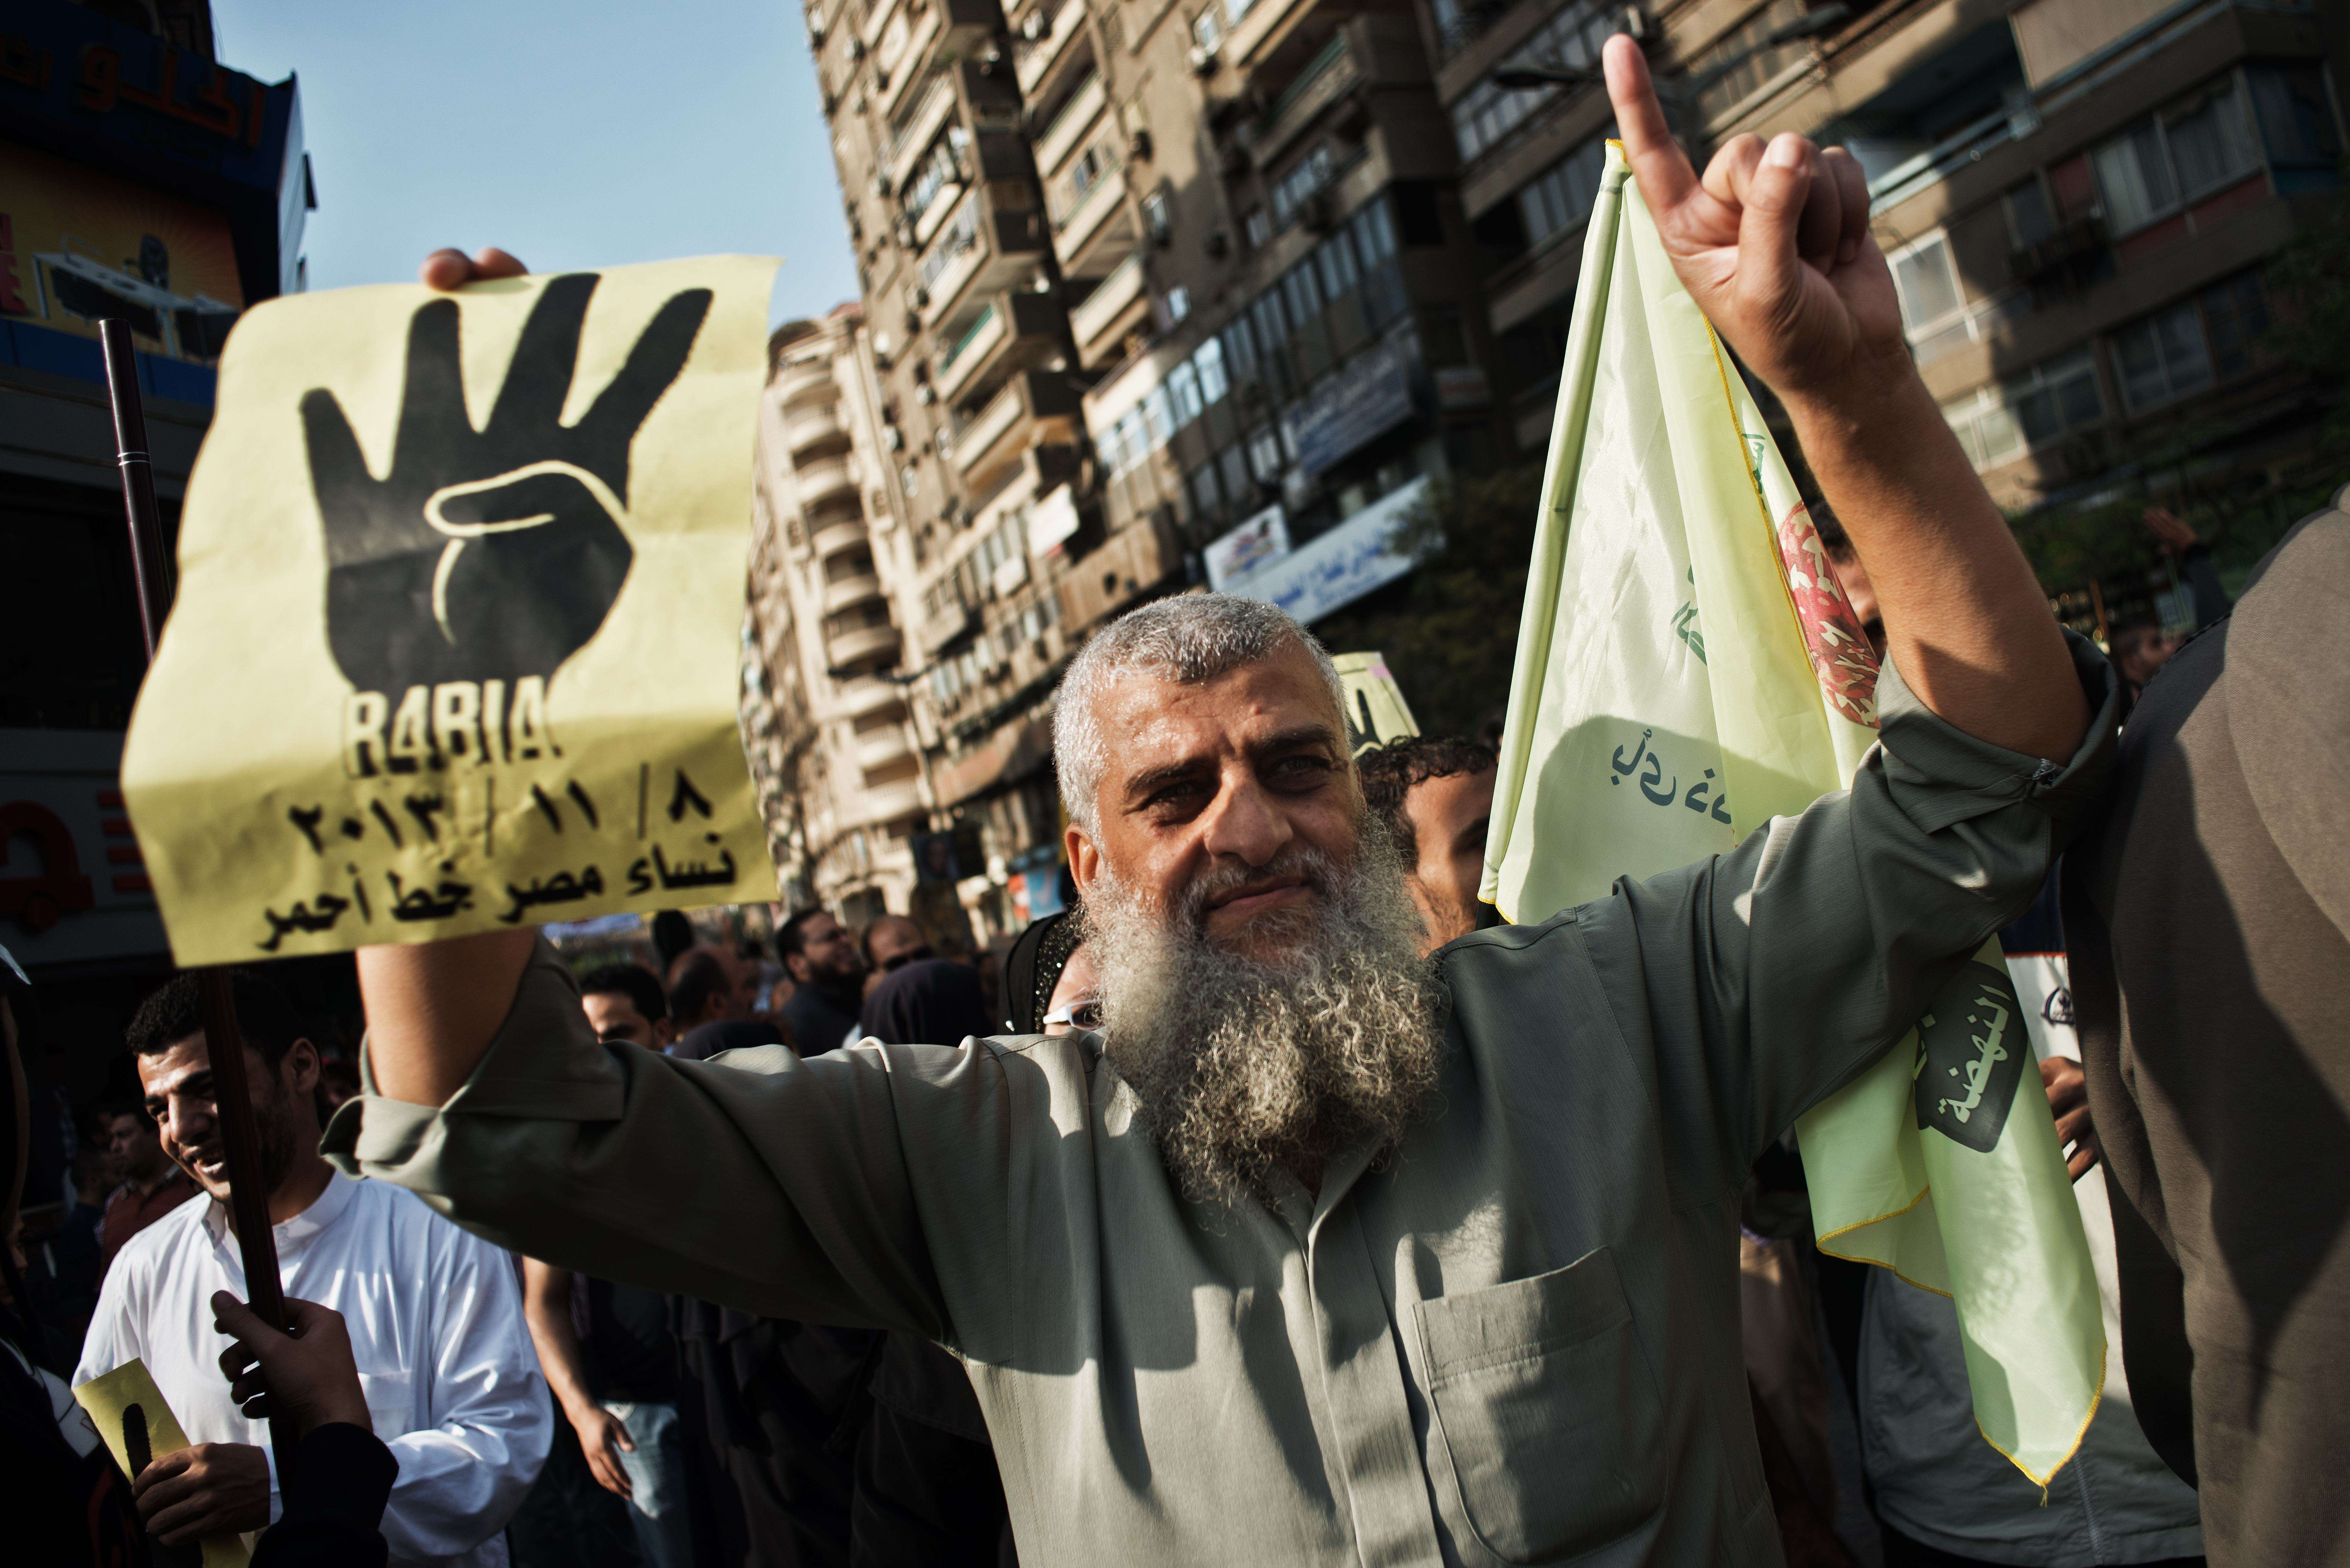 Thousands of supporters of the Muslim Brotherhood and ousted president Mohamed Morsi march through the streets of Cairo in his support on November 8, 2013 in Cairo.  (AFP PHOTO/GIANLUIGI GUERCIA)